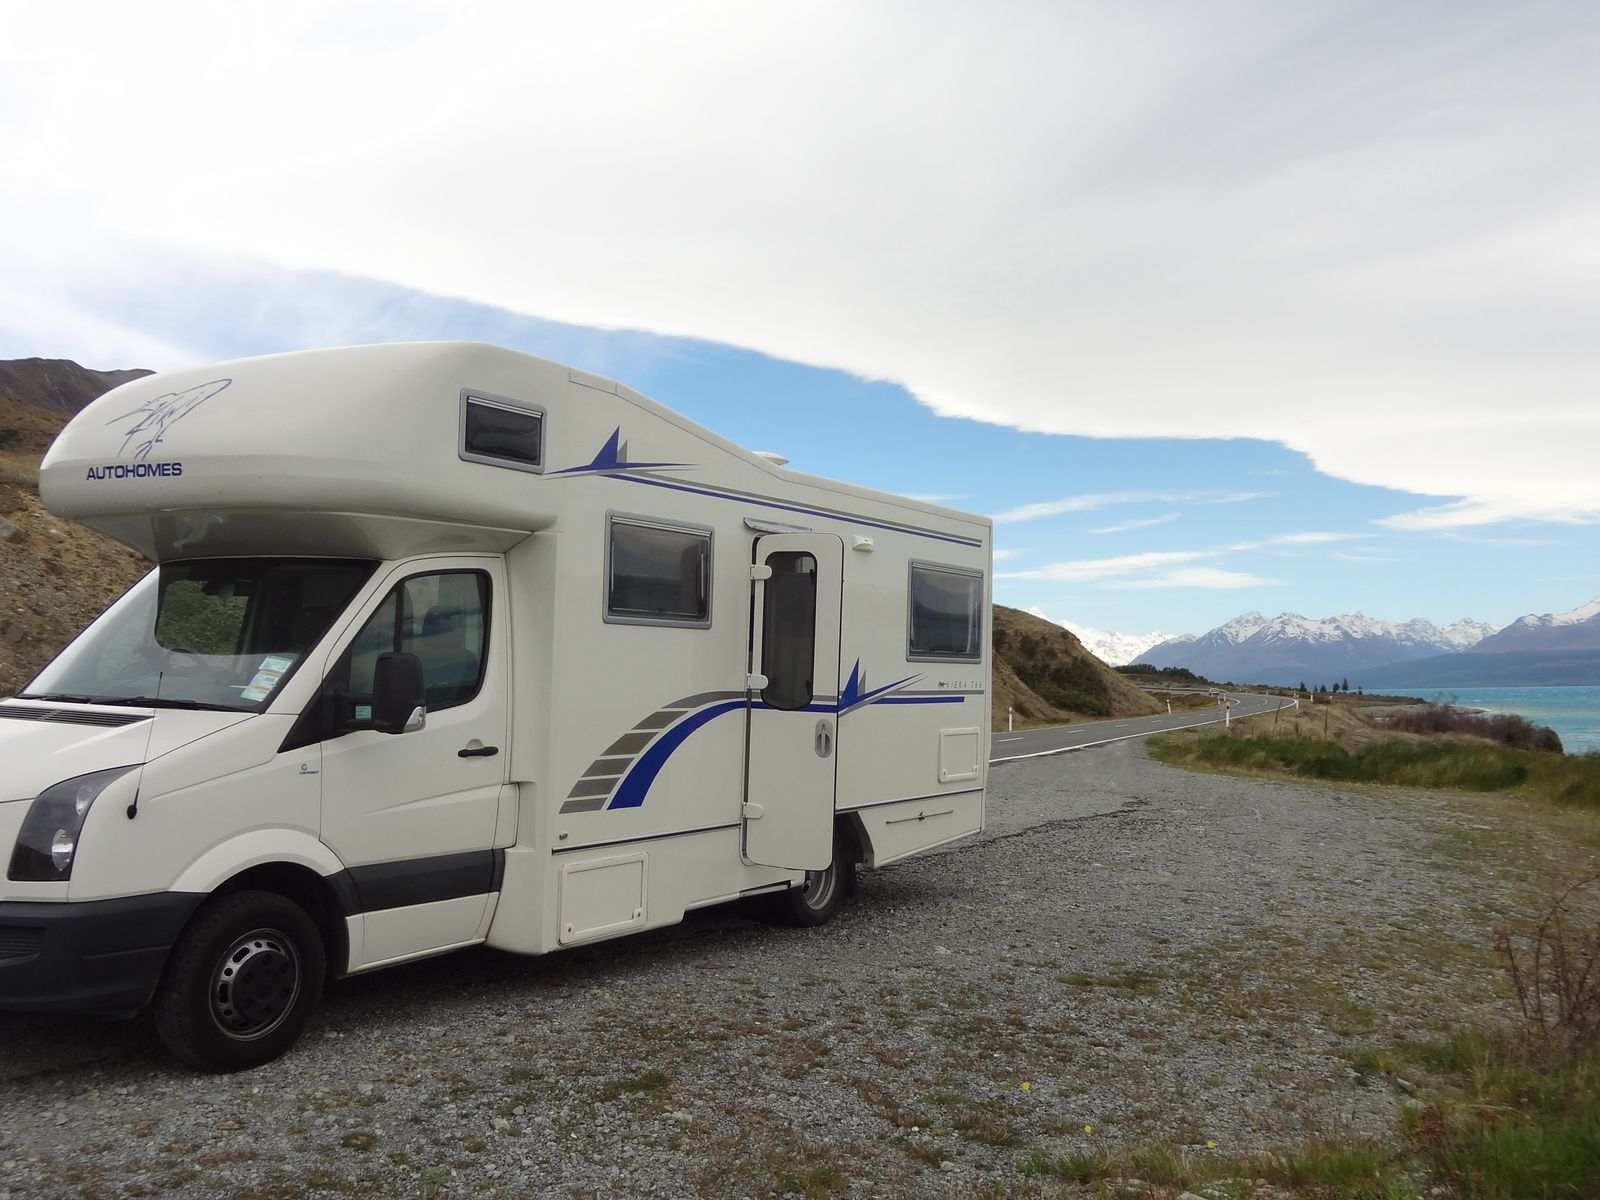 Après le Lake Tekapo, direction le Mont Cook !